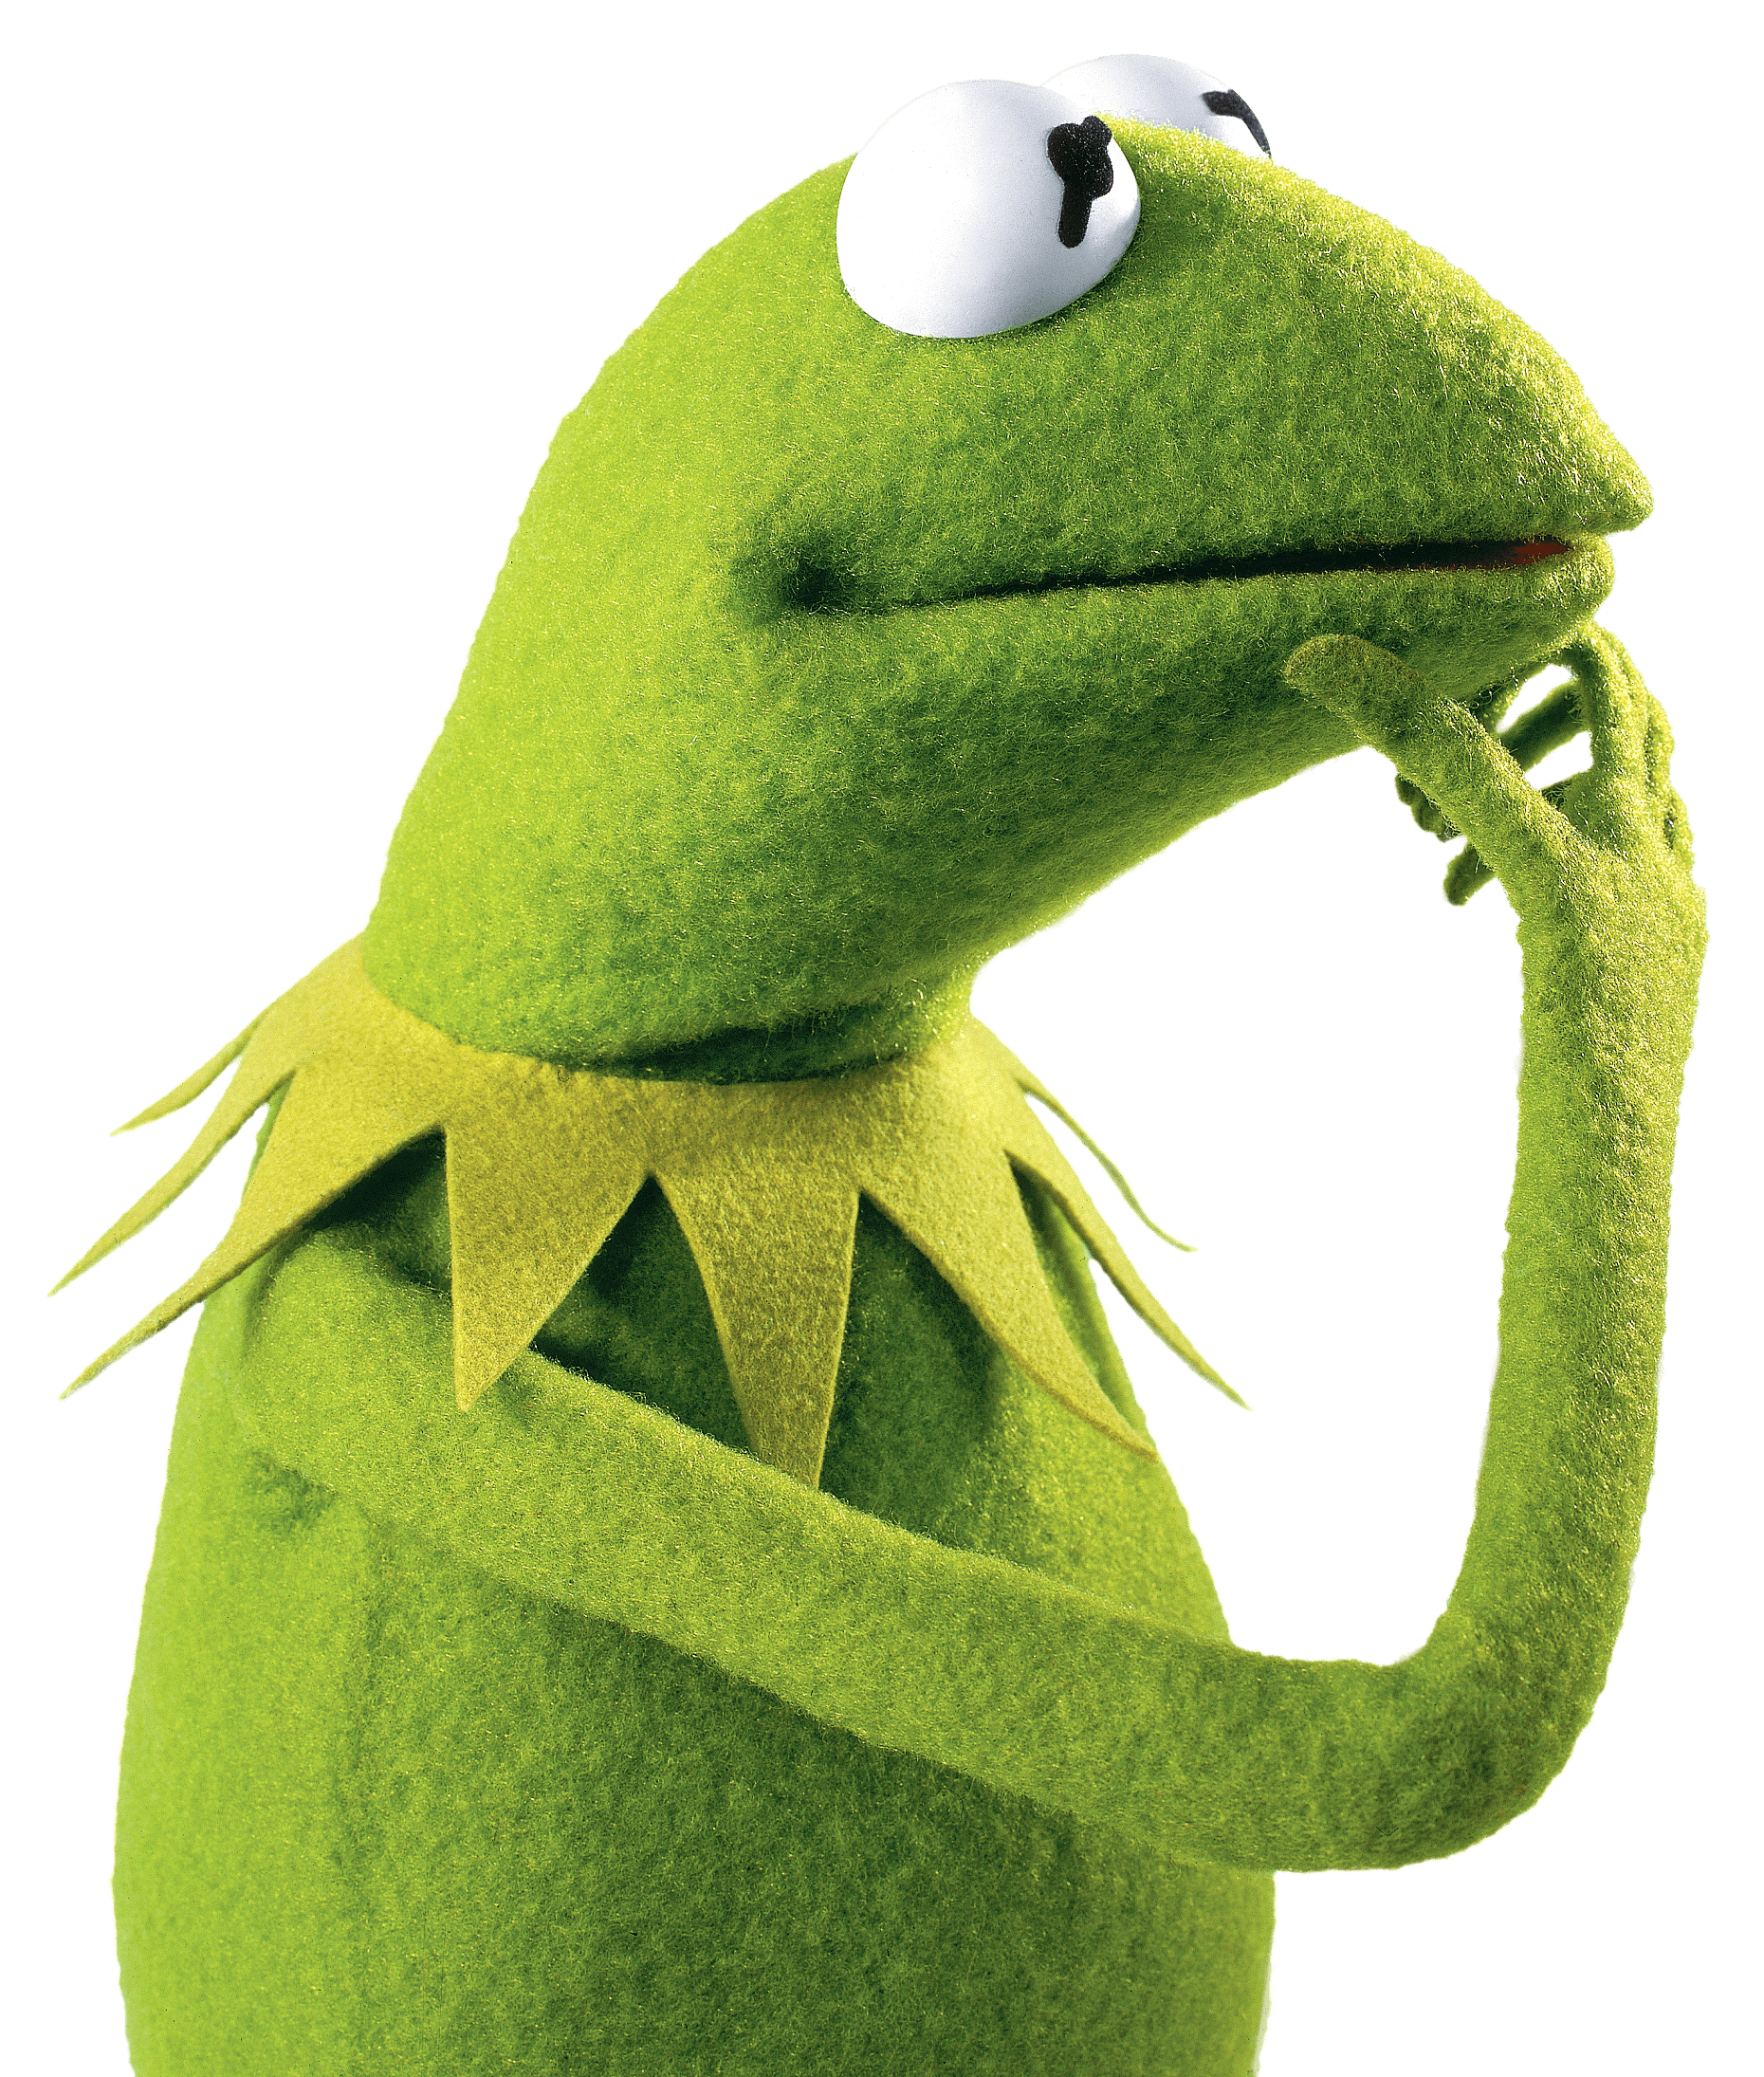 Kermit tea png. The frog thinking transparent